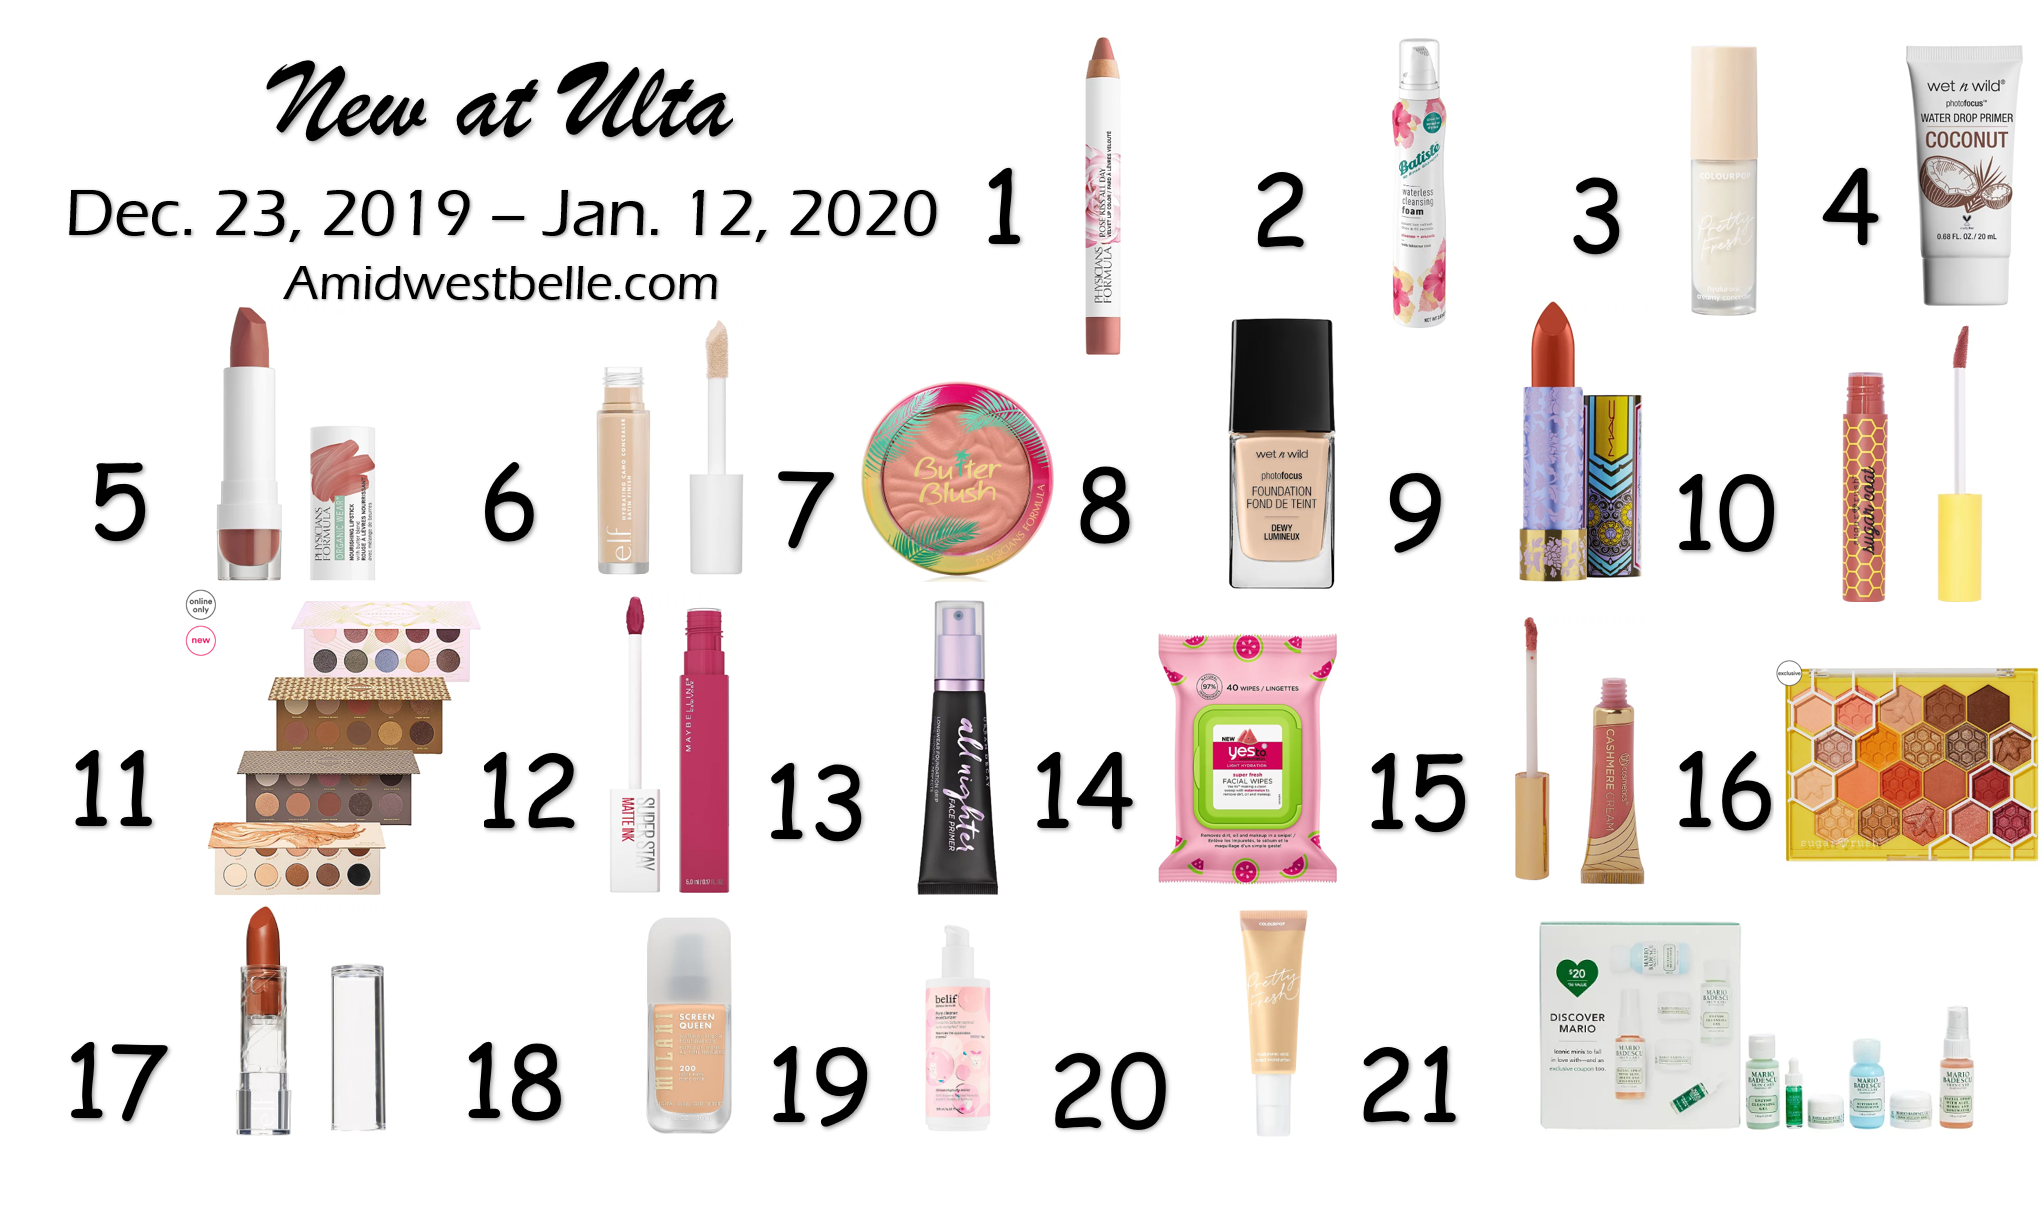 New at Ulta | December 23, 2019 - January 12, 2020 - A Midwest Belle